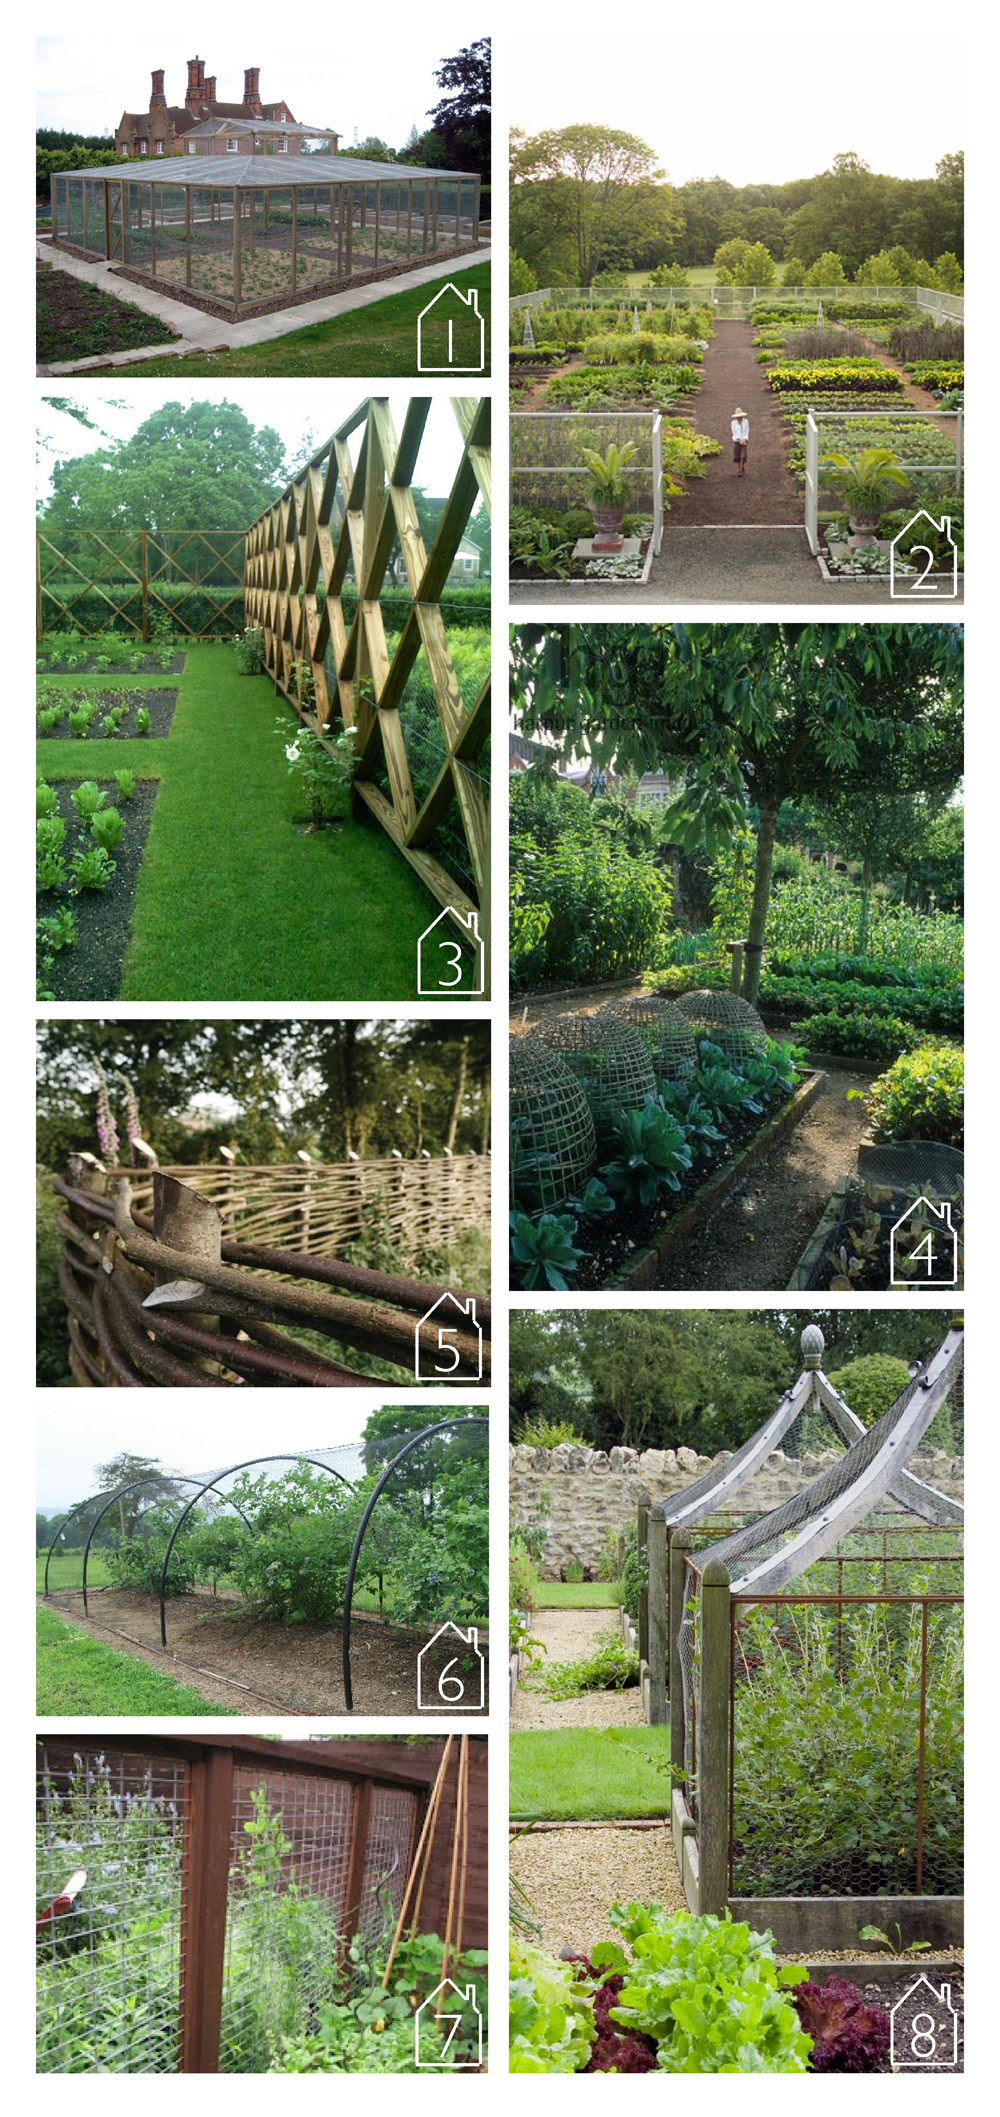 1. Garden cage room via  Apartment Farm   2. Martha Stewart's Garden via  Martha Stewart   3. Hampton's garden by Lisa Bynon Garden Design via  Gardenista   4.Hatfield House via  Harpur Garden Images   5. Woven willow fence at  Walnuts Farm  via  Gardenista   6. Blueberry bush netting design via  Bellewood Gardens   7. Oak Cliff garden via  Plano Blue Stem   8. via  Nicety